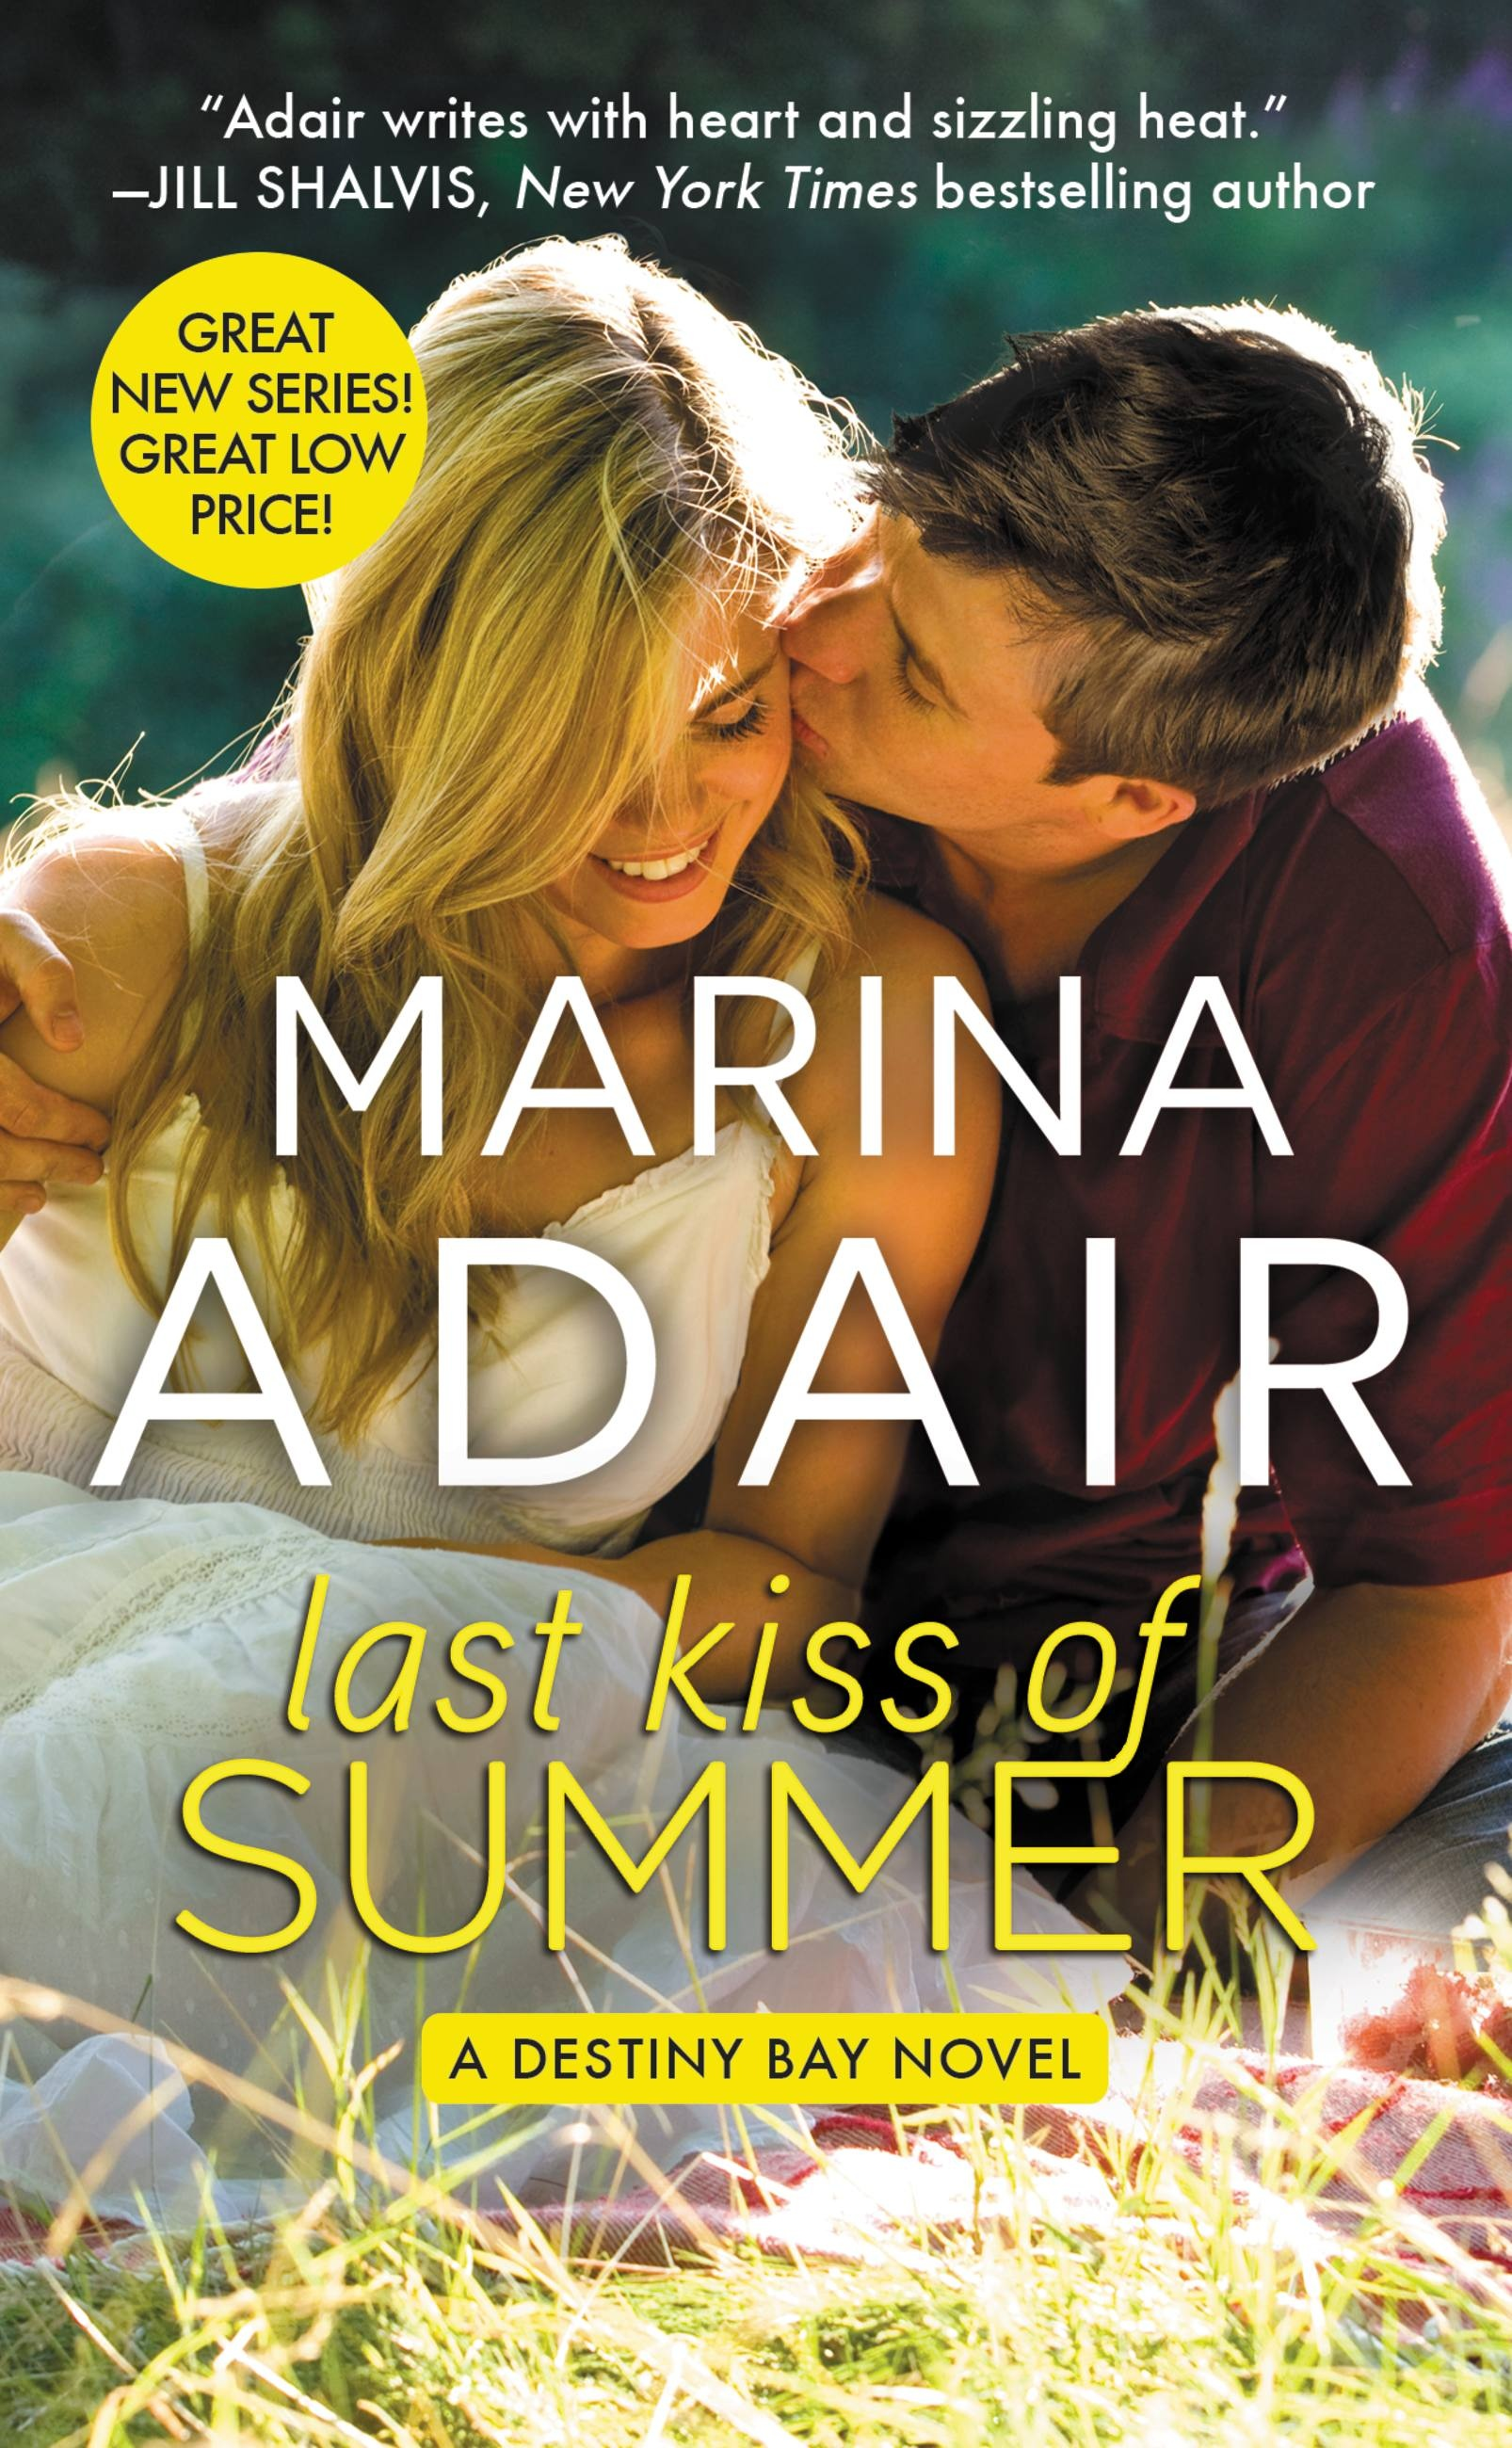 Last Kiss of Summer (Forever Special Release Edition)